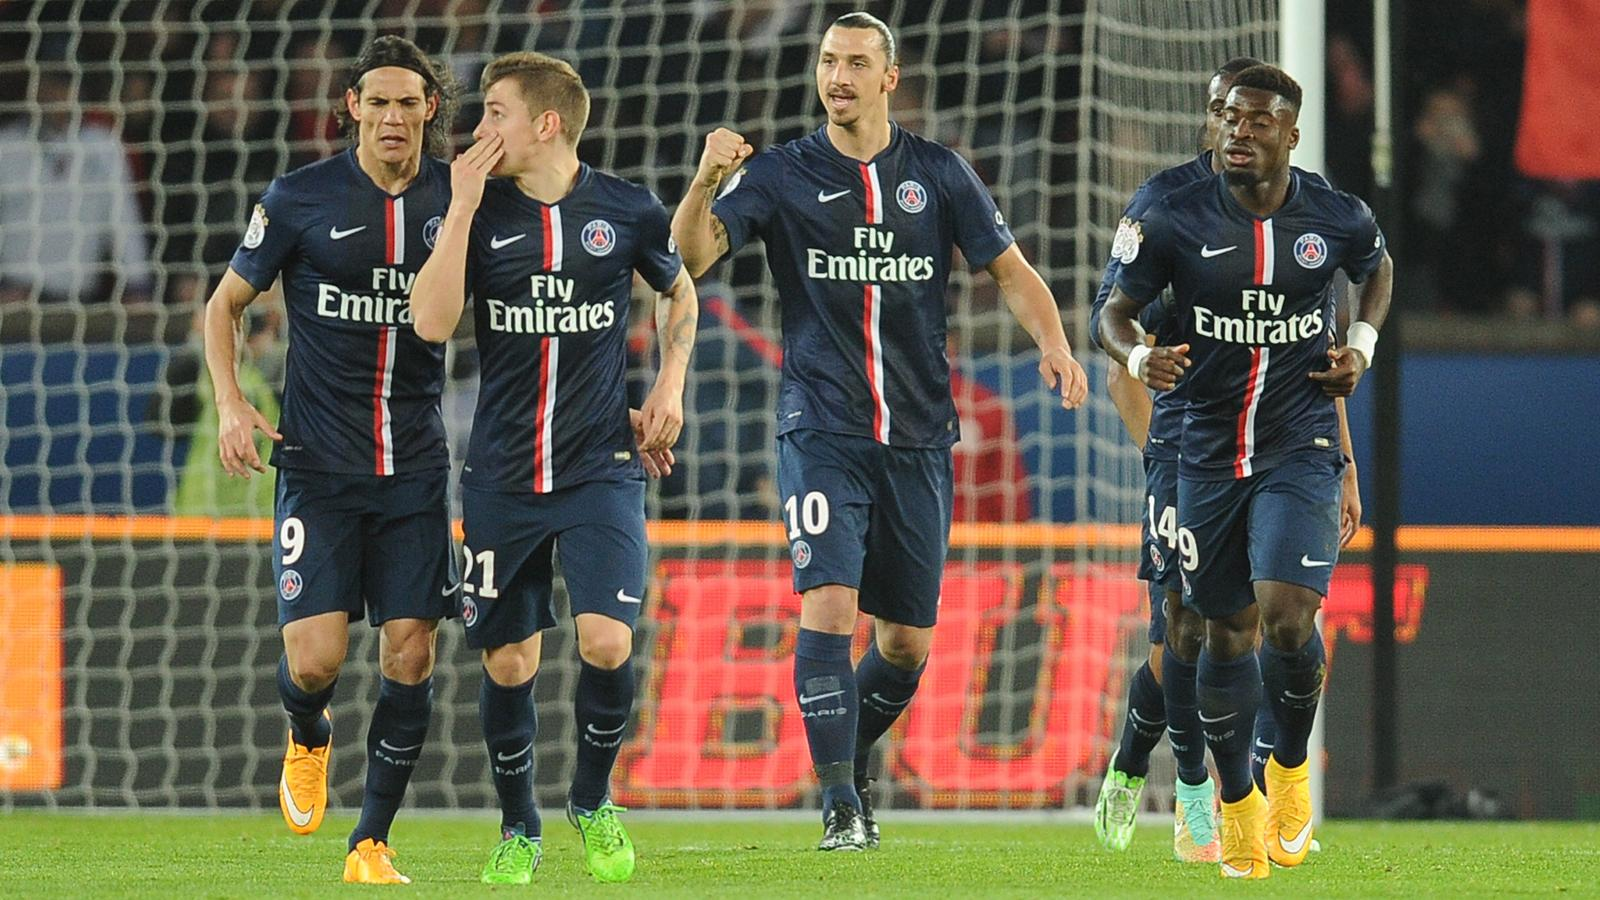 EN DIRECT / LIVE. PSG - OGC Nice - Ligue 1